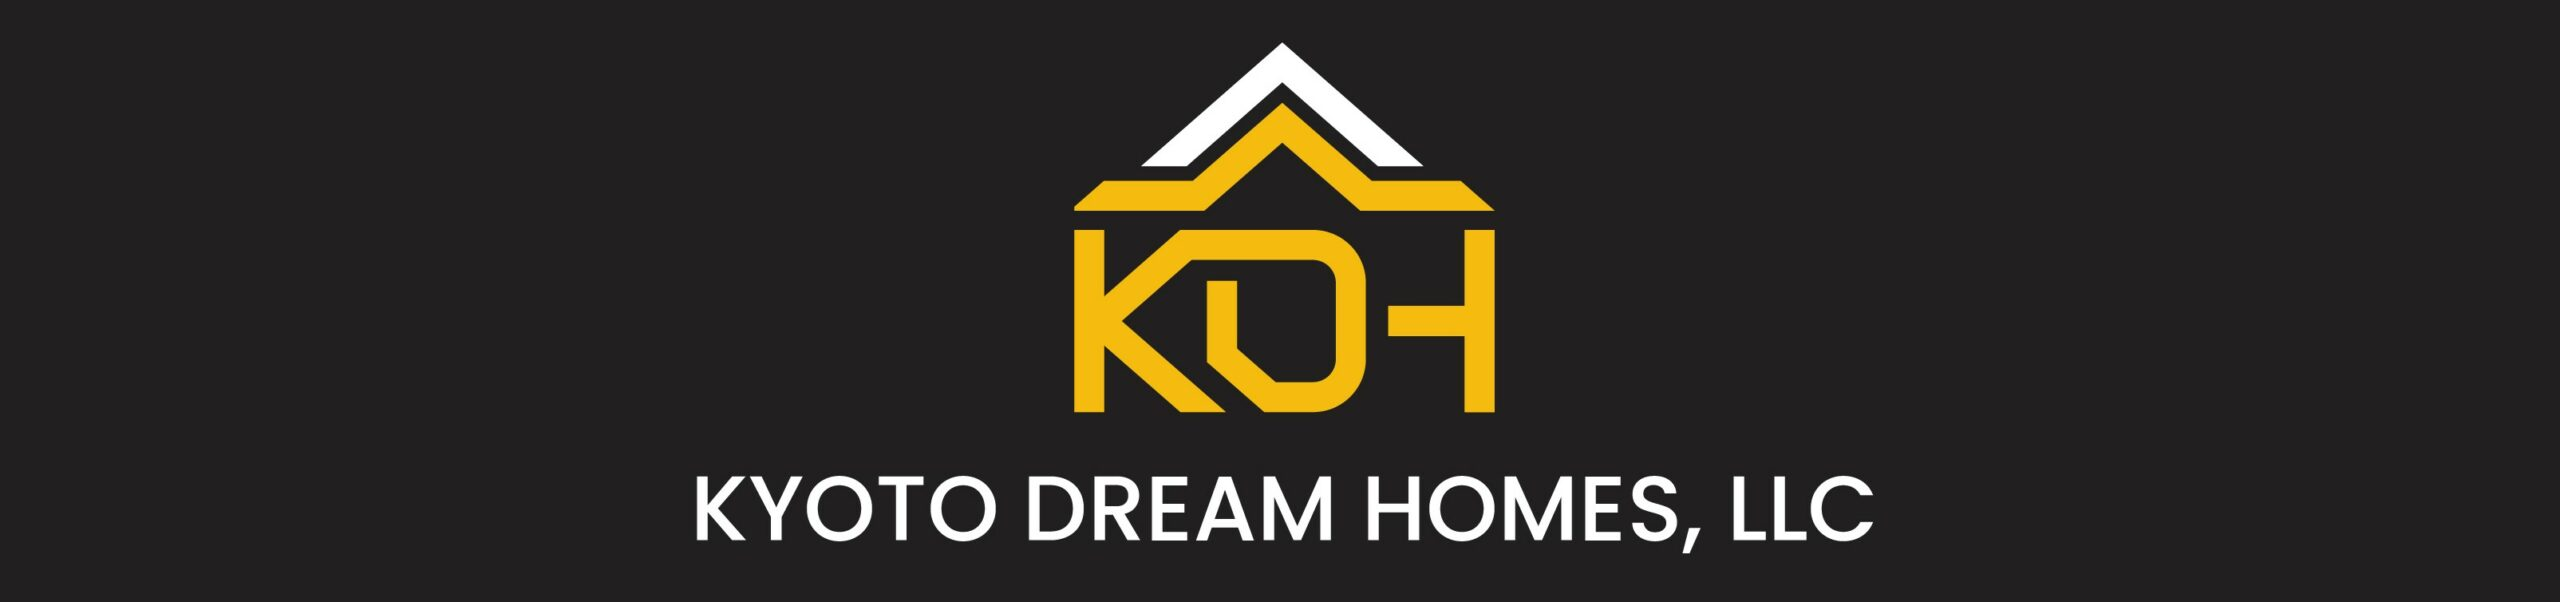 Welcome to KDH - Featured Image